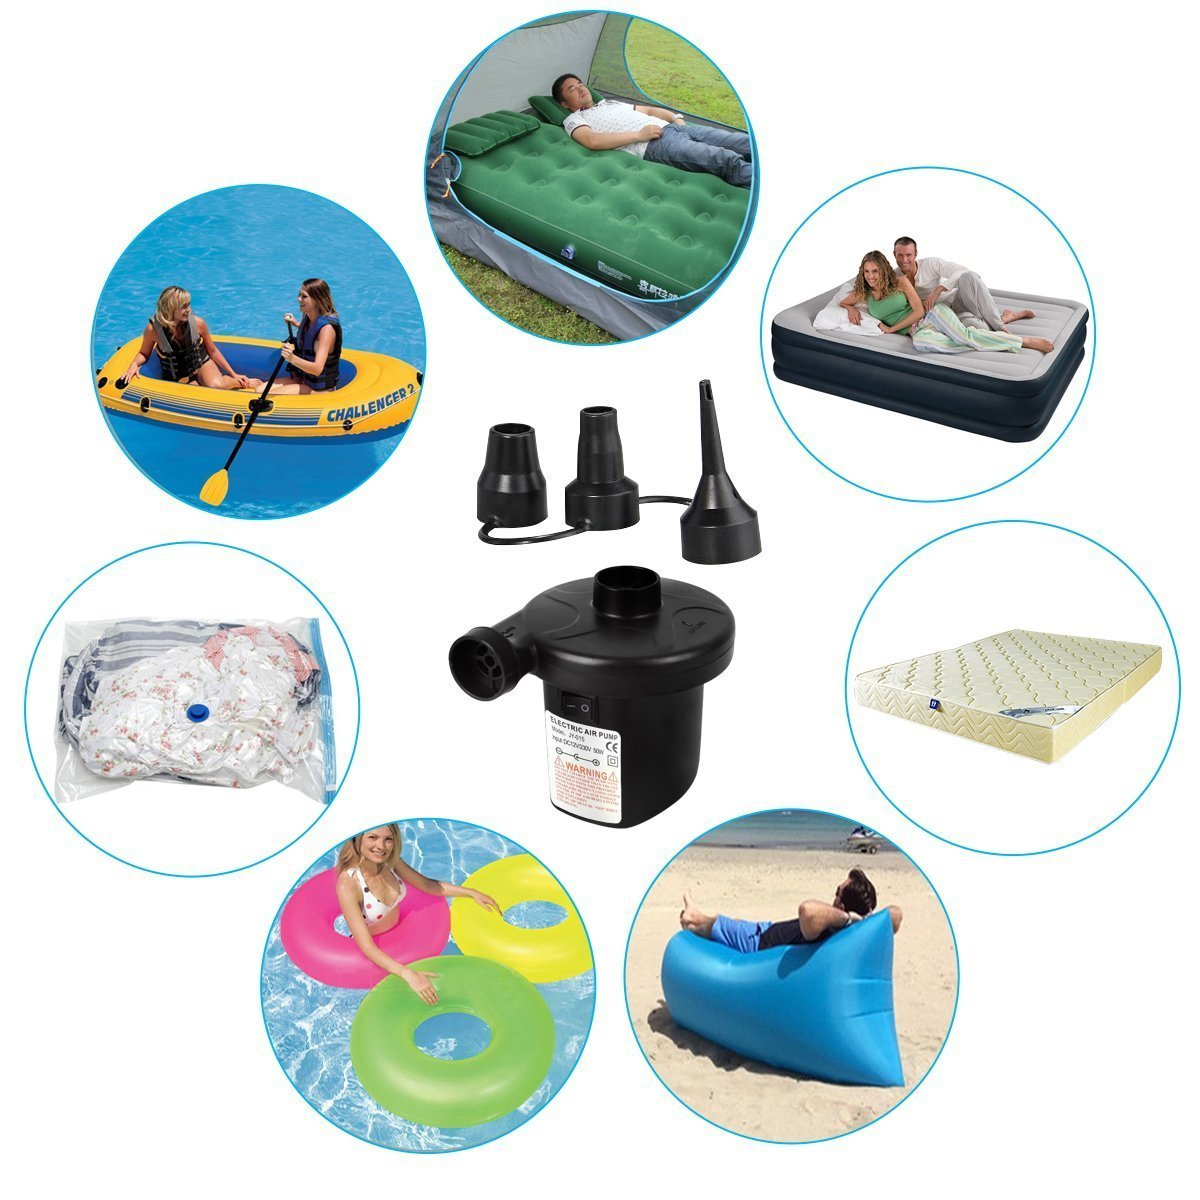 Portable Electric Air Pump Quick-Fill Inflator With 3 Interconnection Nozzles for Balloon Air Mattress Bed Raft Pool Toy Outdoor Camping Inflatable Cushions Boats Swimming Ring (Wall Charger)